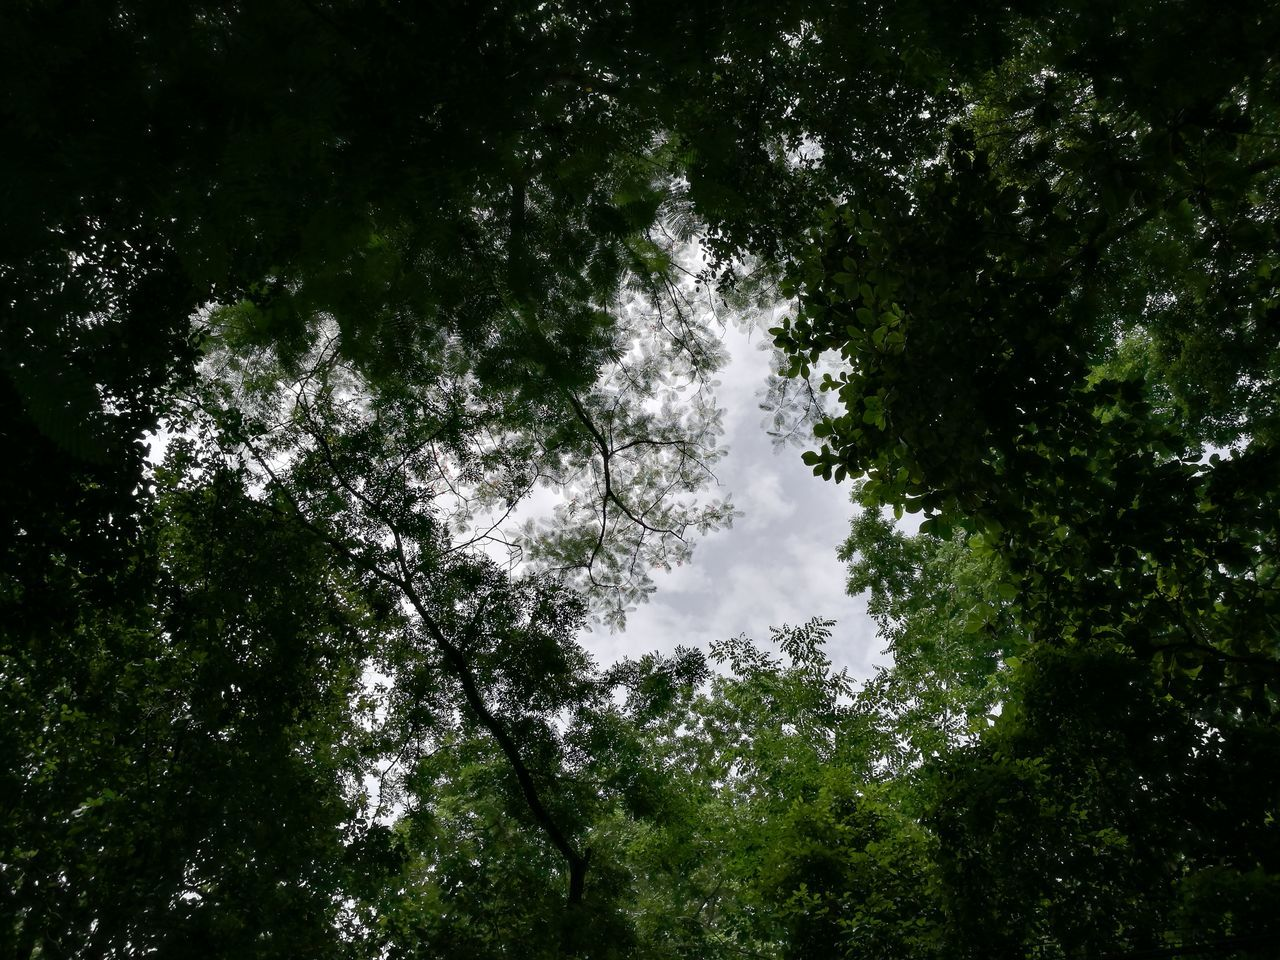 tree, nature, growth, beauty in nature, low angle view, forest, outdoors, no people, tranquility, day, scenics, branch, sky